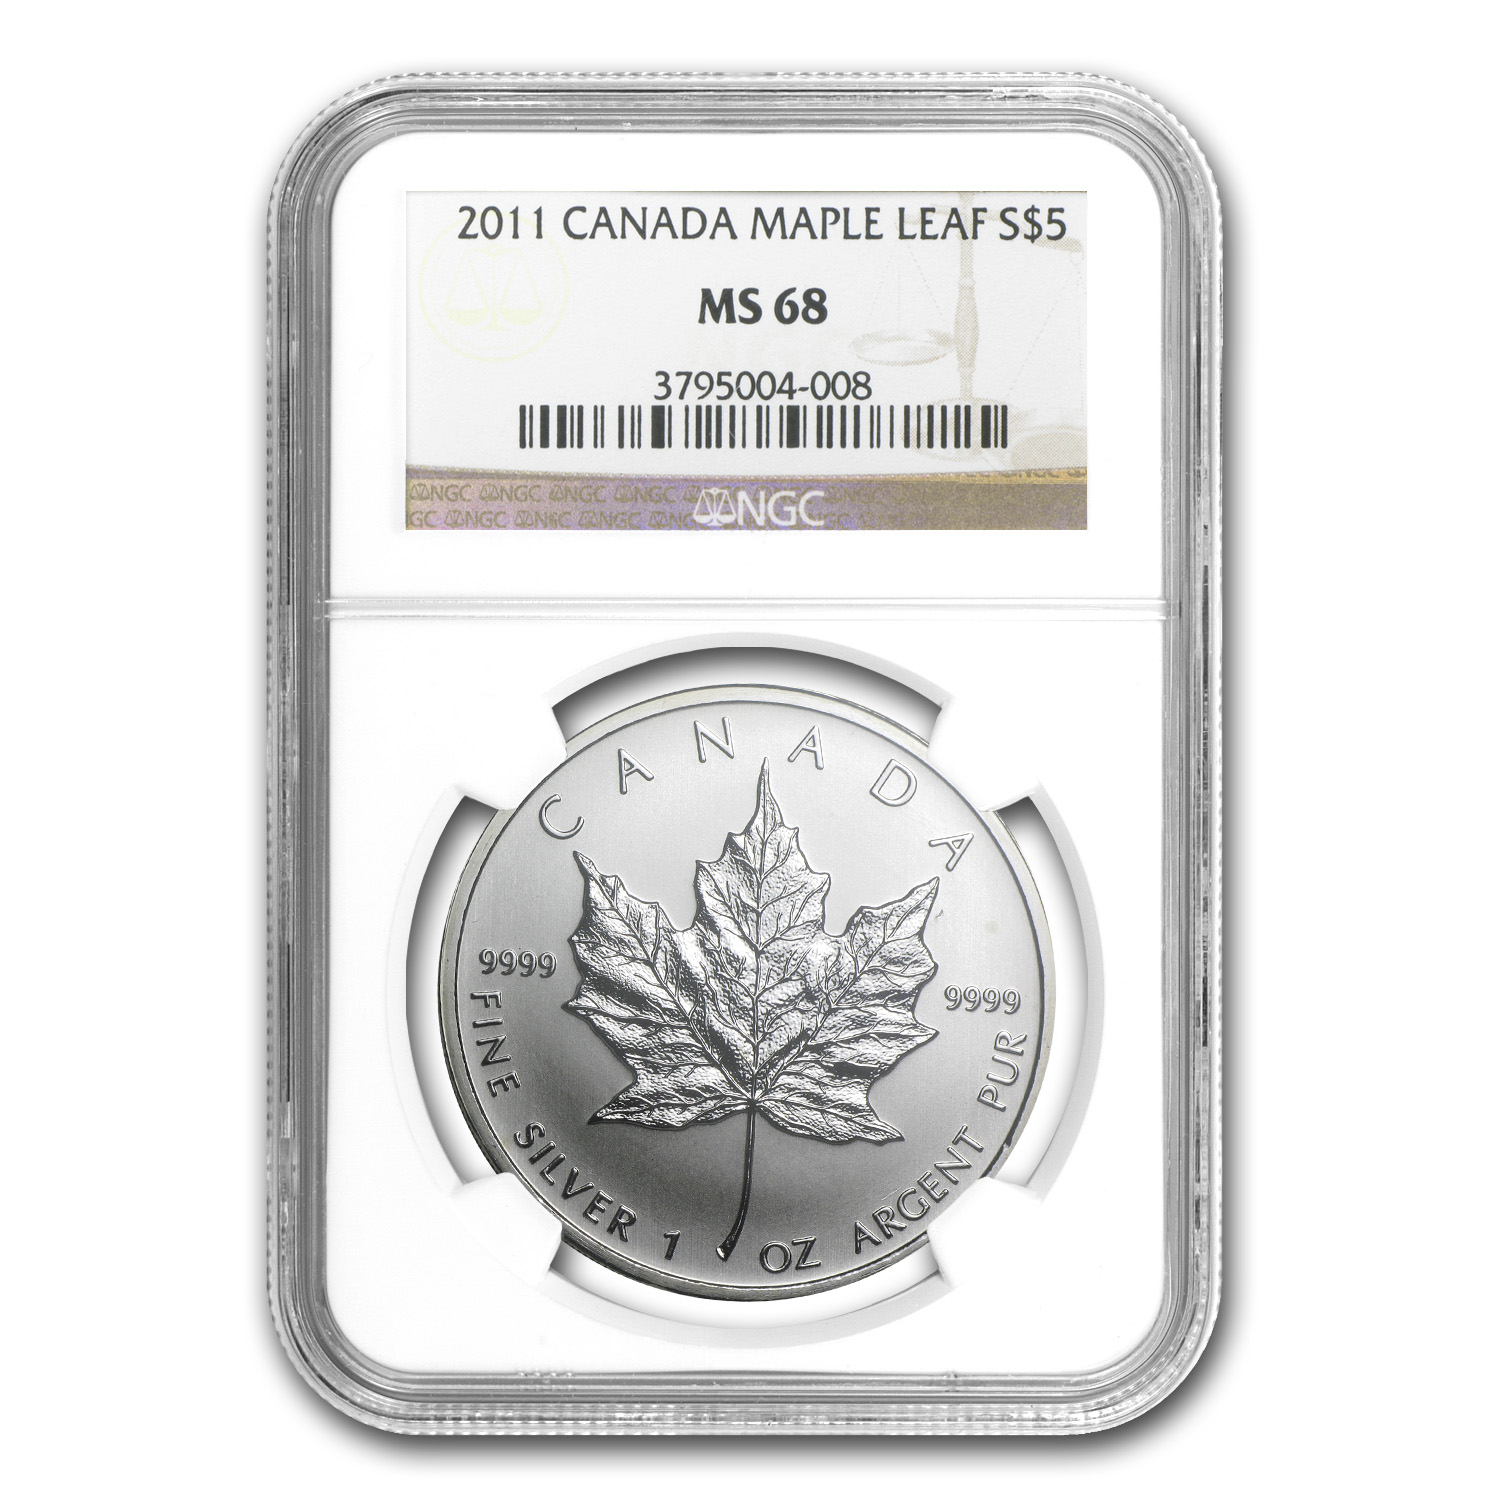 2011 1 oz Silver Canadian Maple Leaf MS-68 NGC